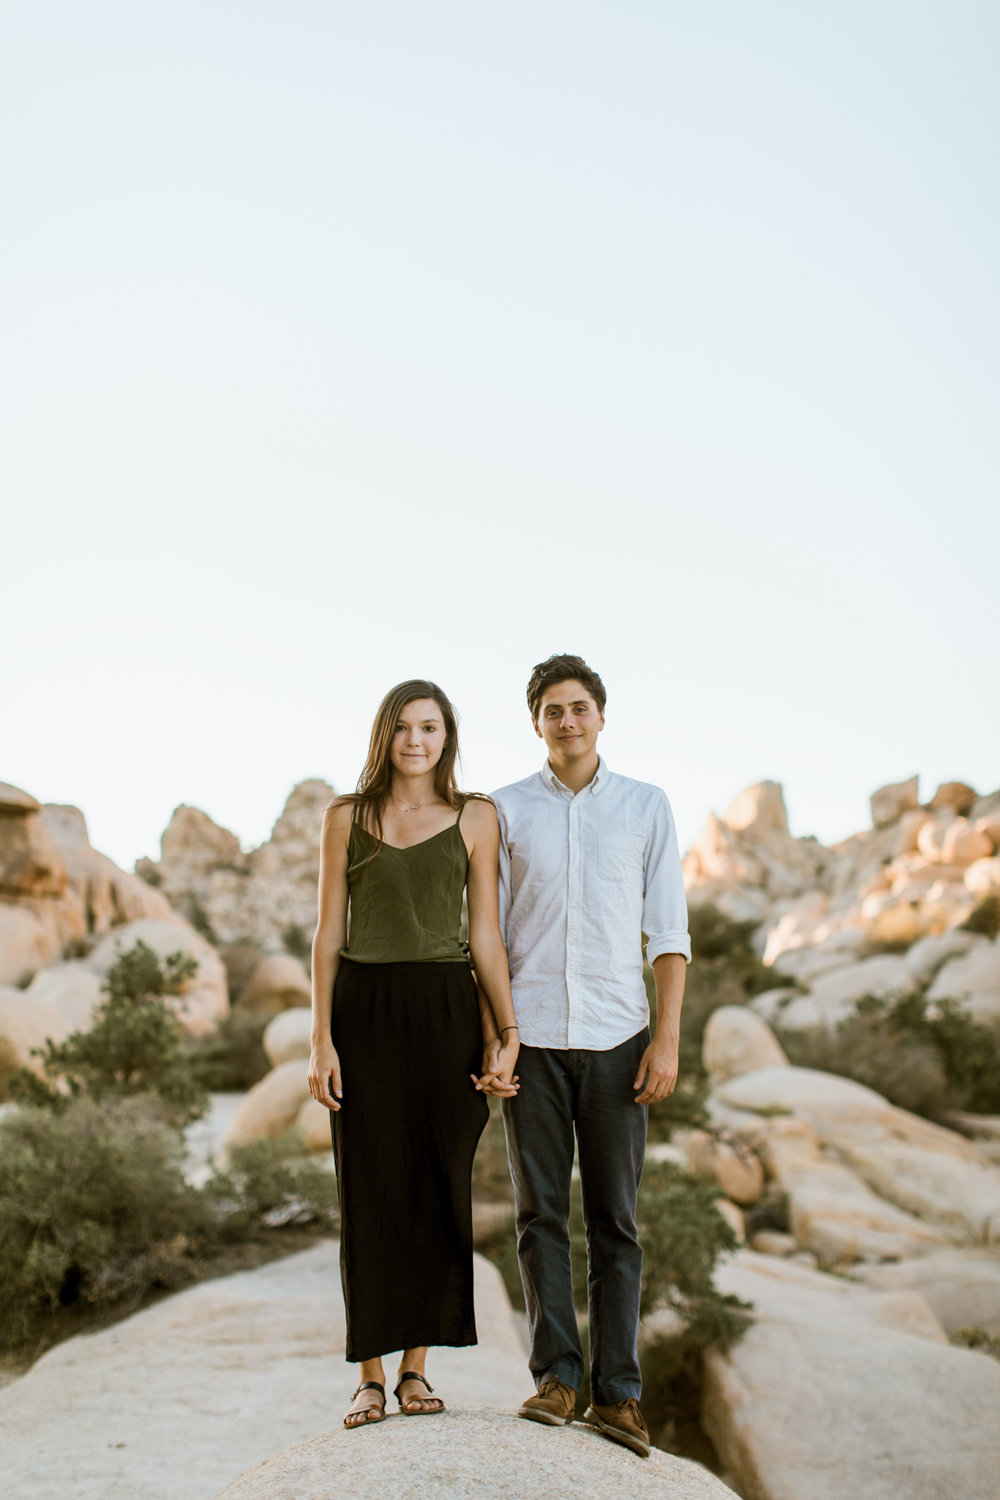 Joshua Tree National Park adventure portrait session // adventure wedding photographer // www.abbihearne.com